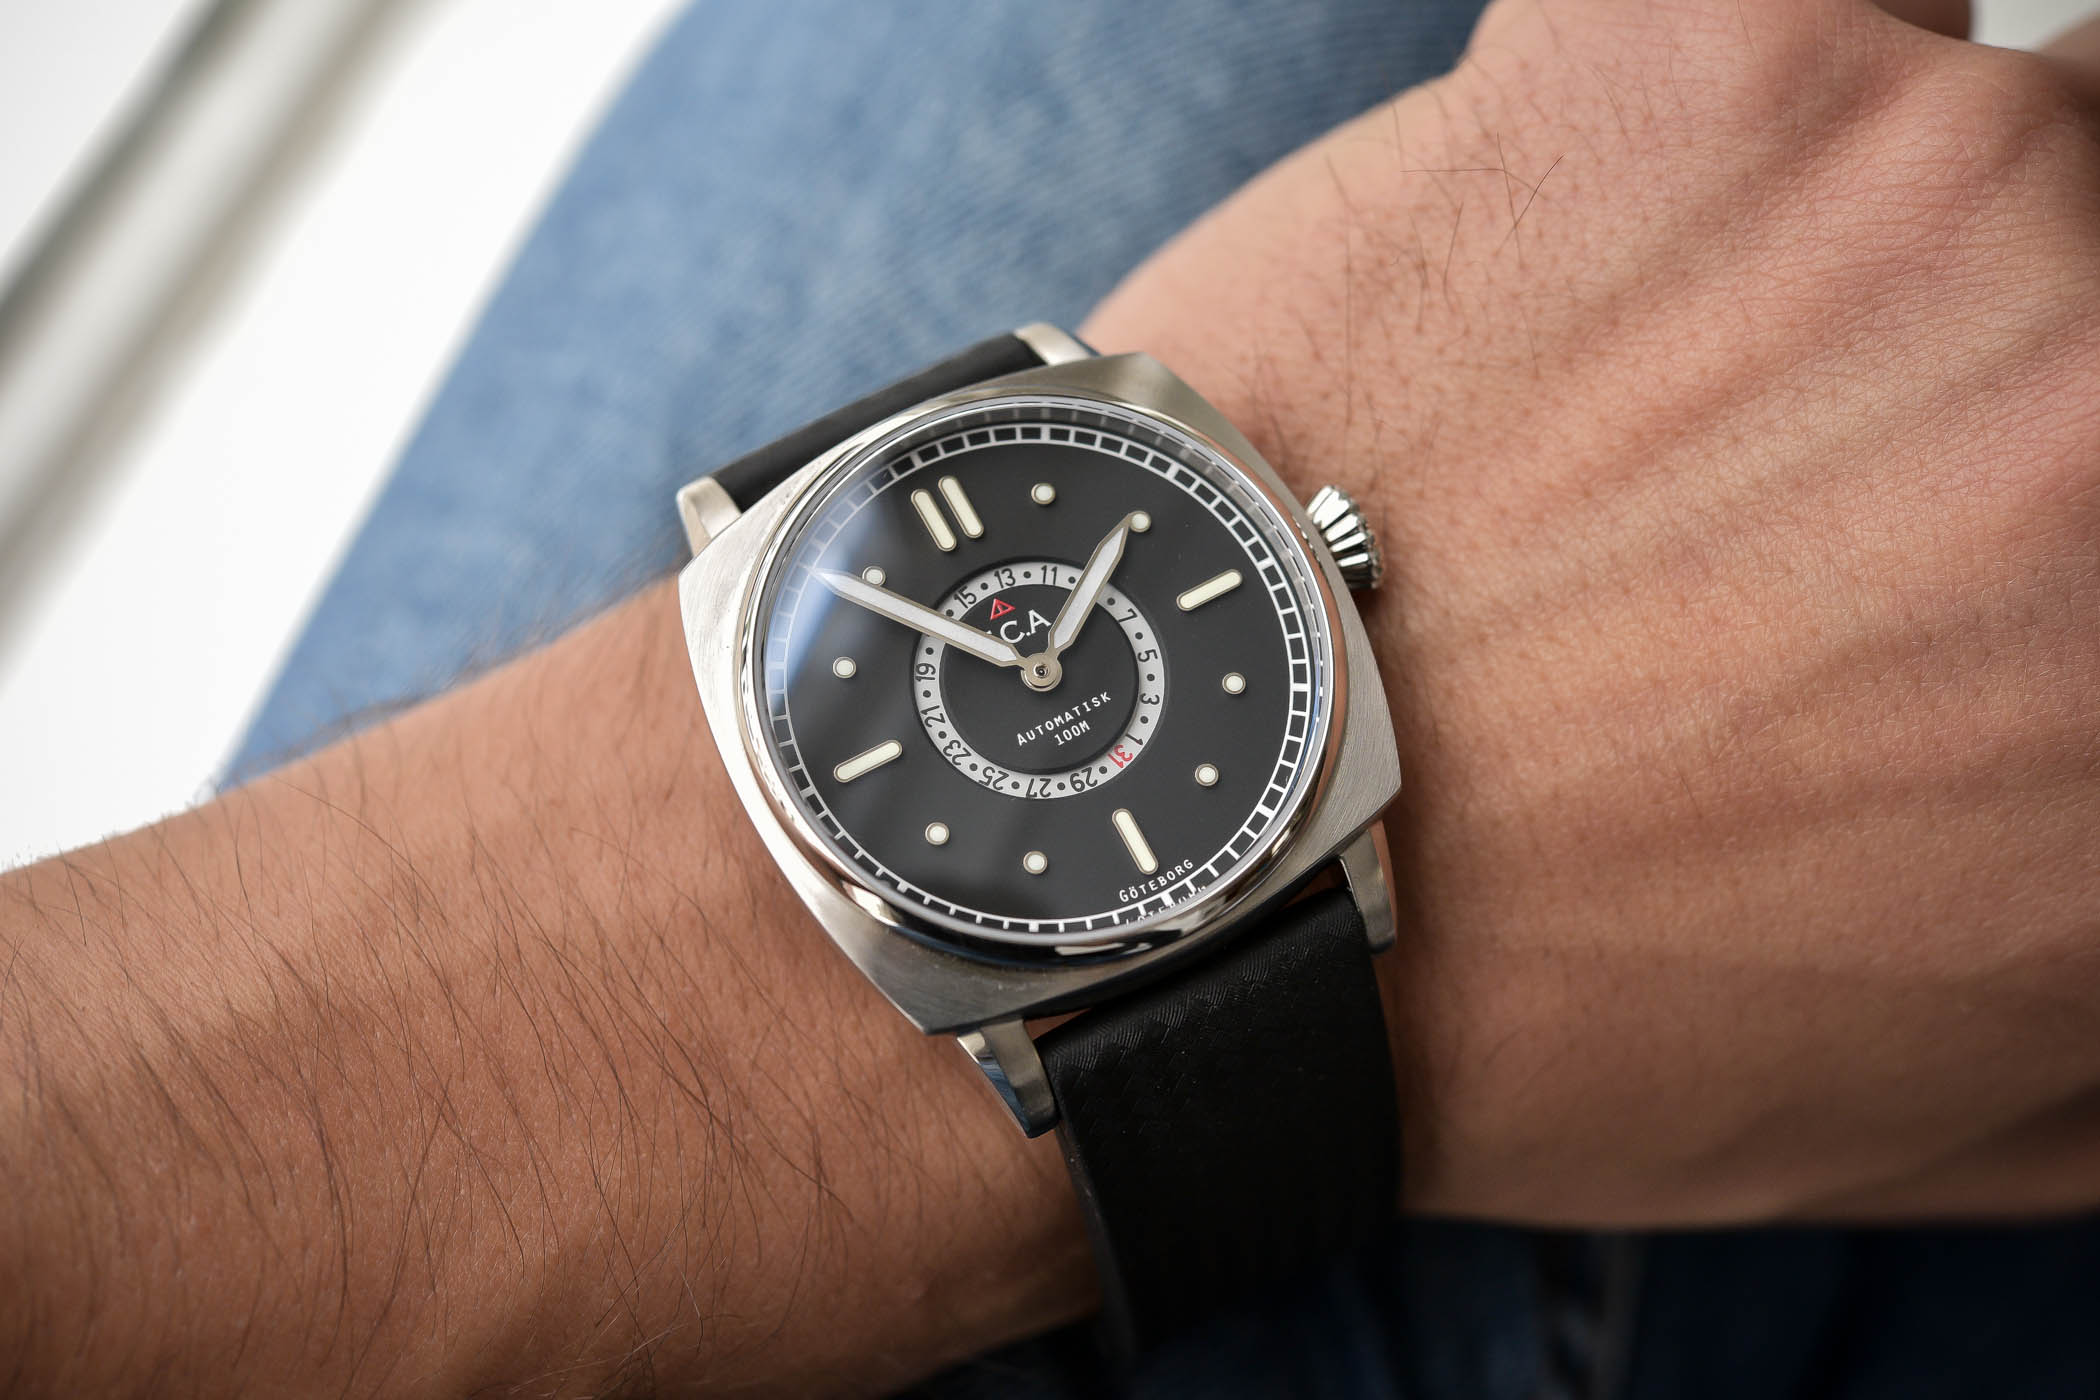 Review – The E.C. Andersson North Sea II, An Affordable And Robust Sports Watch